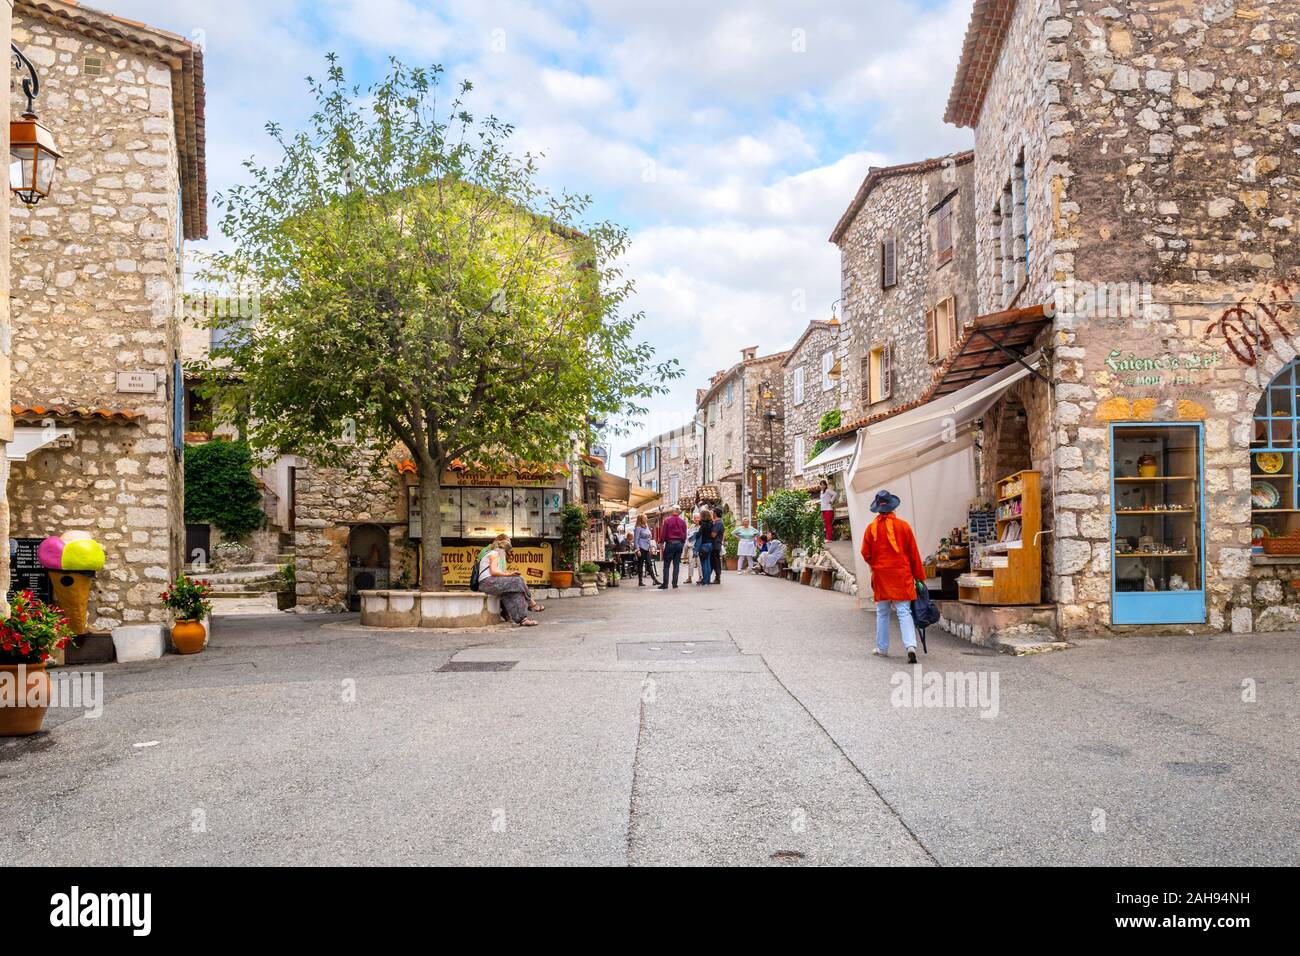 Tourists and locals fill the large square of shops and cafes inside the medieval hilltop village of Gourdon, France. Stock Photo